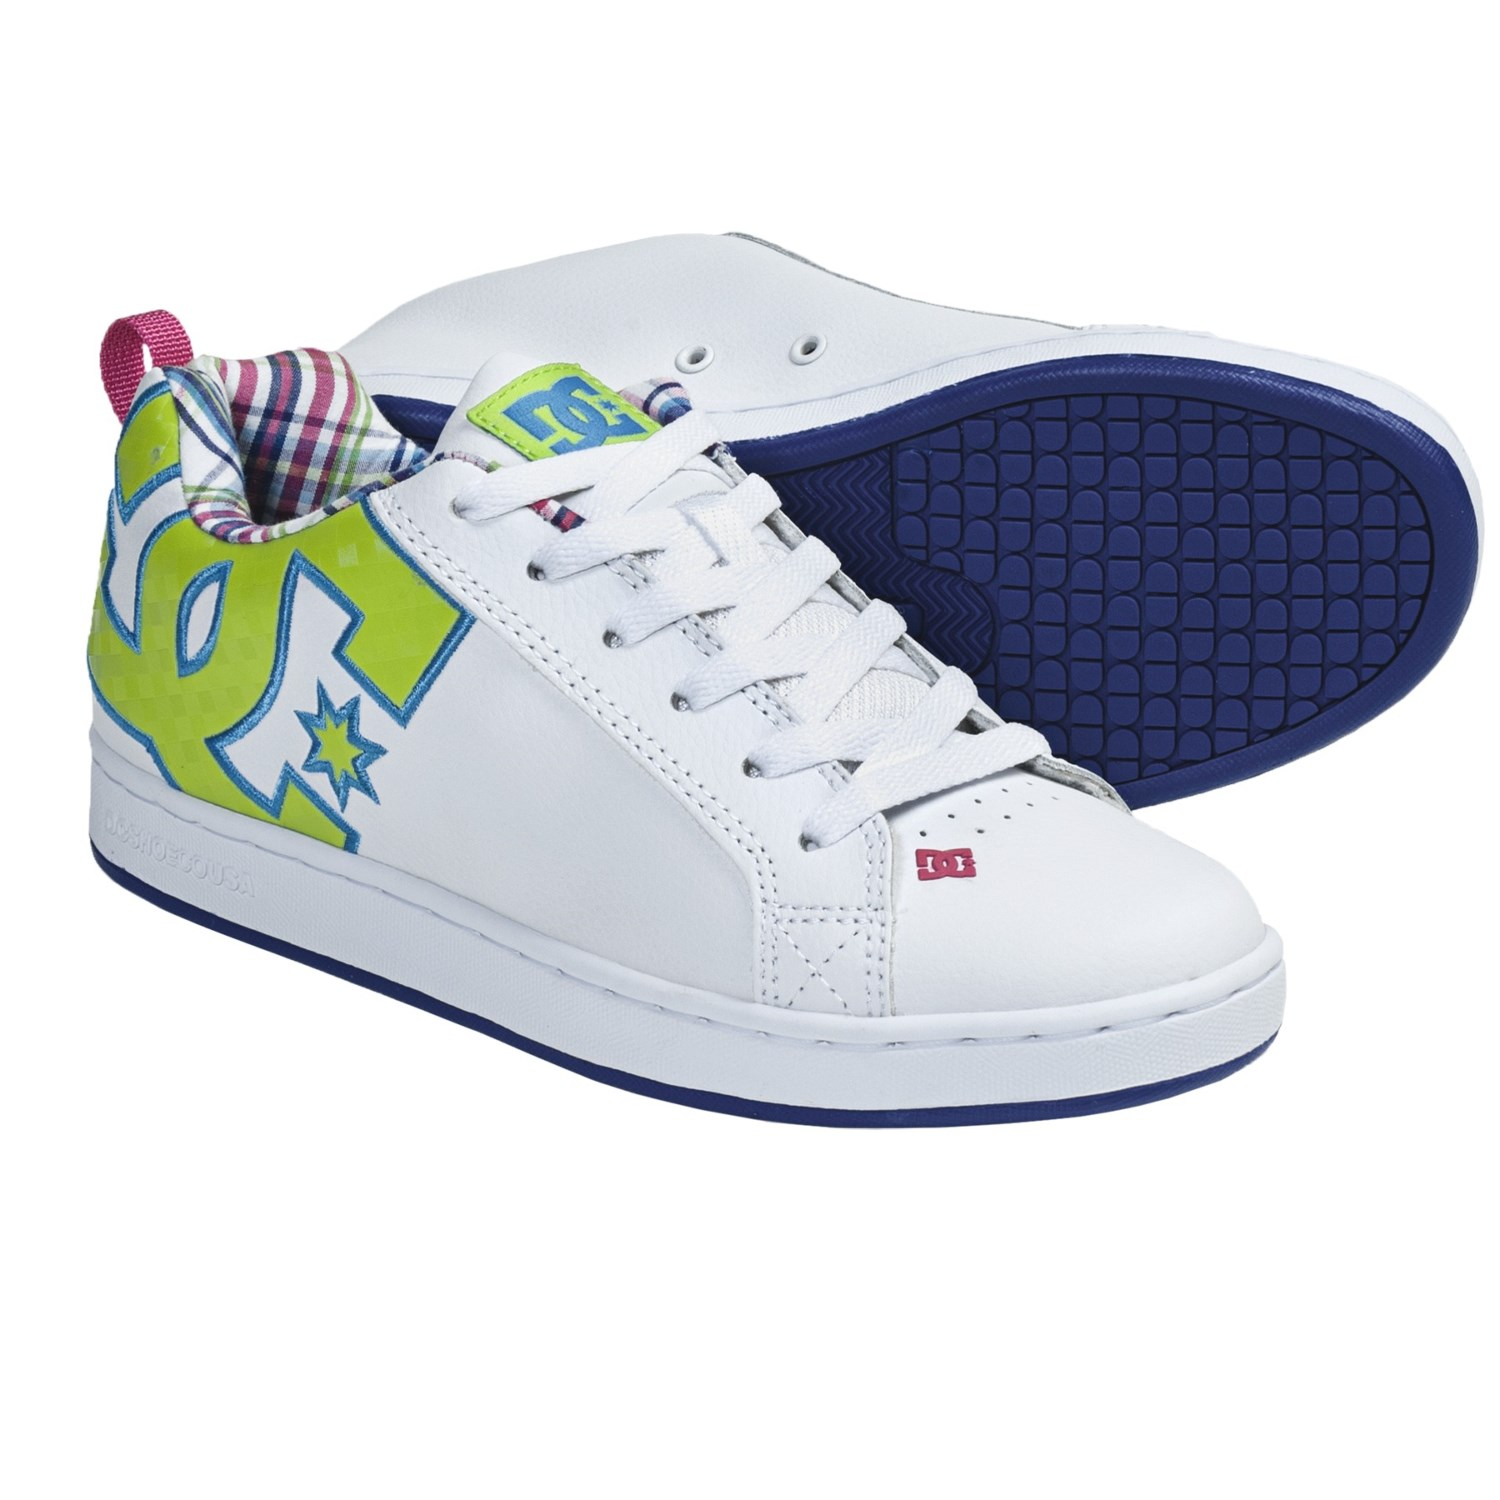 DC Shoes Court Graffik SE Skate Shoes (For Women) in White/Crazy Pink